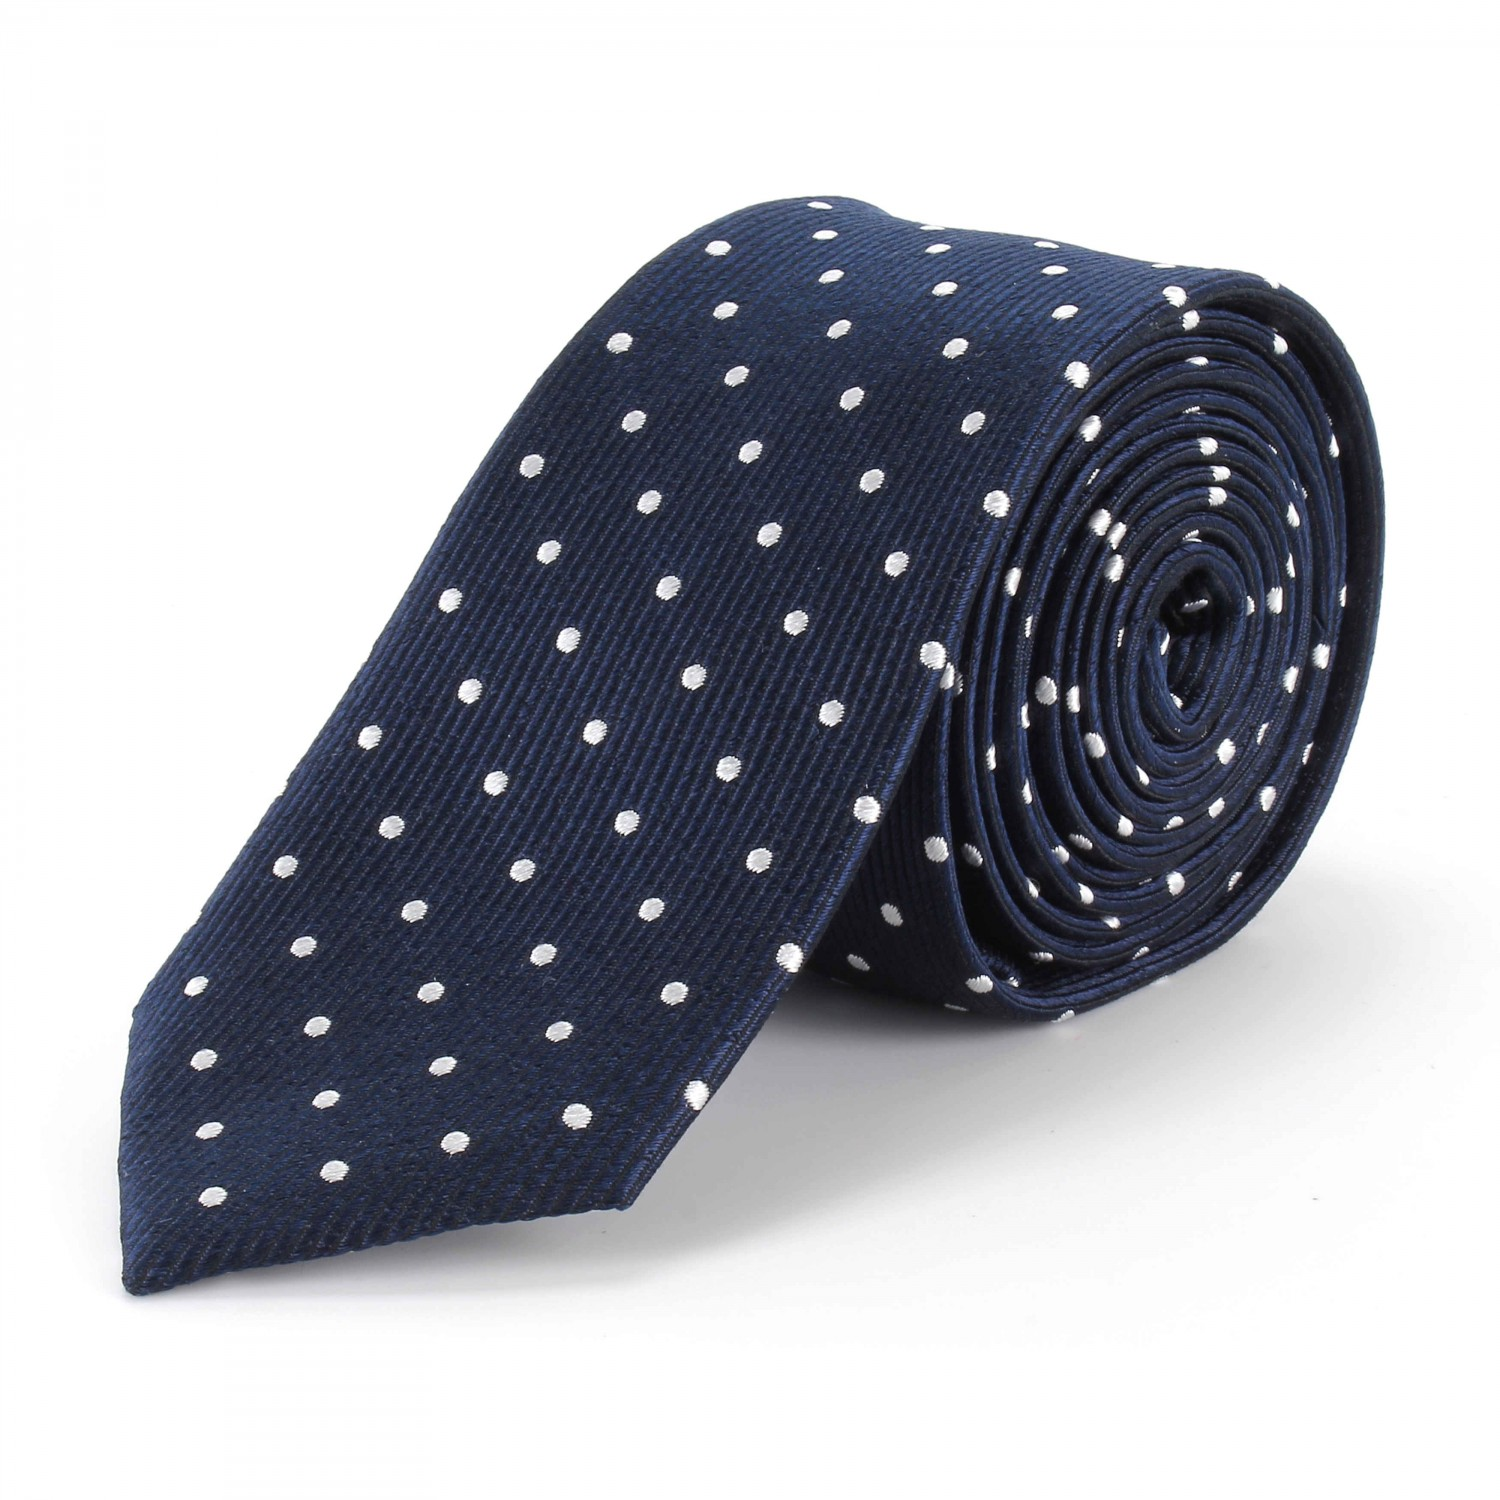 091ed403a29b Buy Silk Printed Ties and Silk Knitted Ties from Tootal Direct